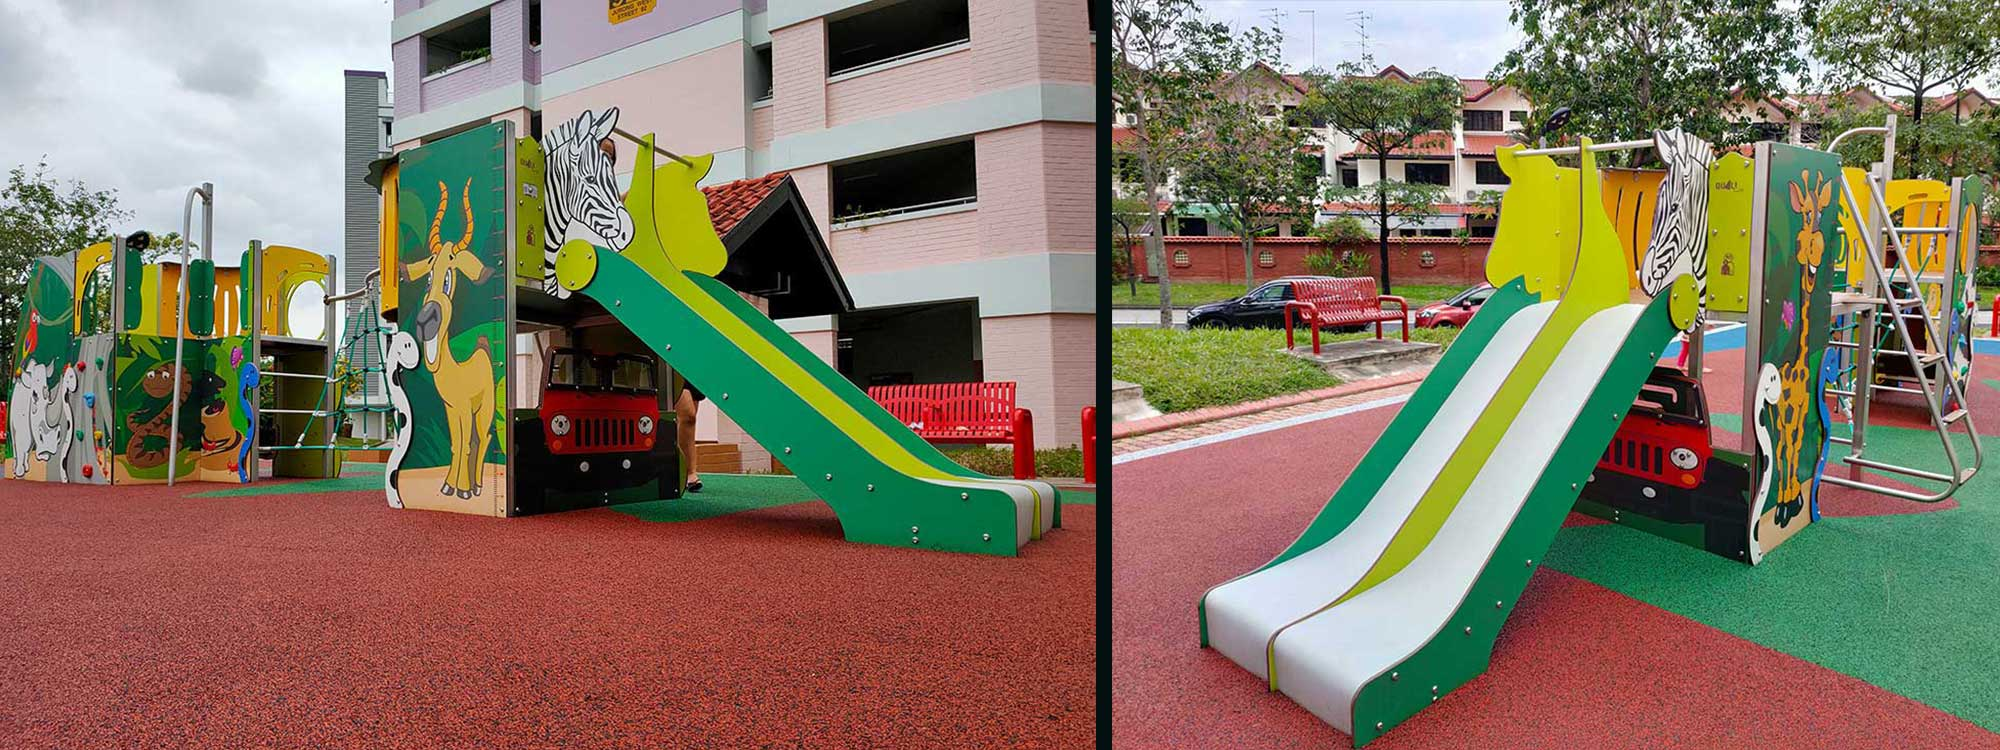 Tailor-made outdoor games with an innovative design